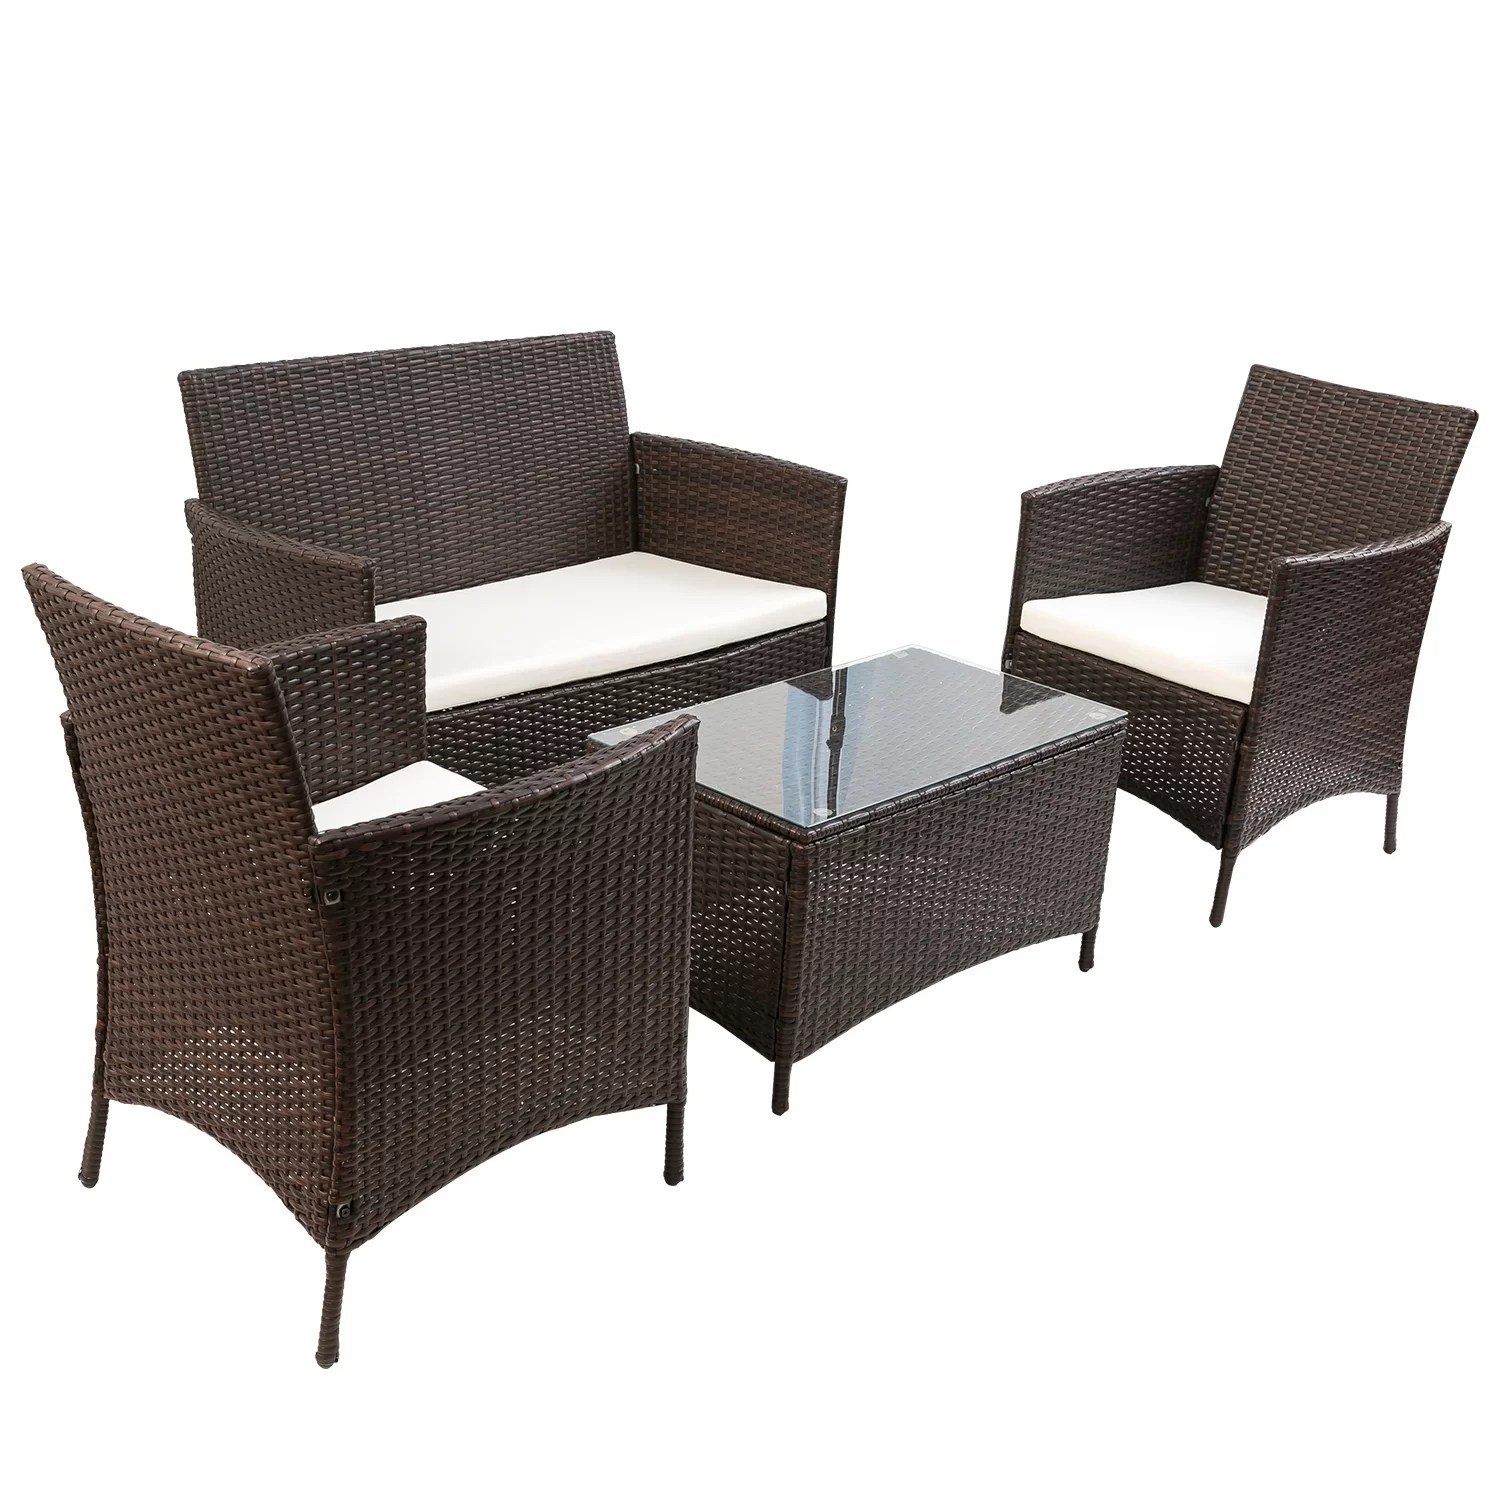 Sofa Rattan Laisha 4 Piece Rattan Sofa Seating Group With Cushions